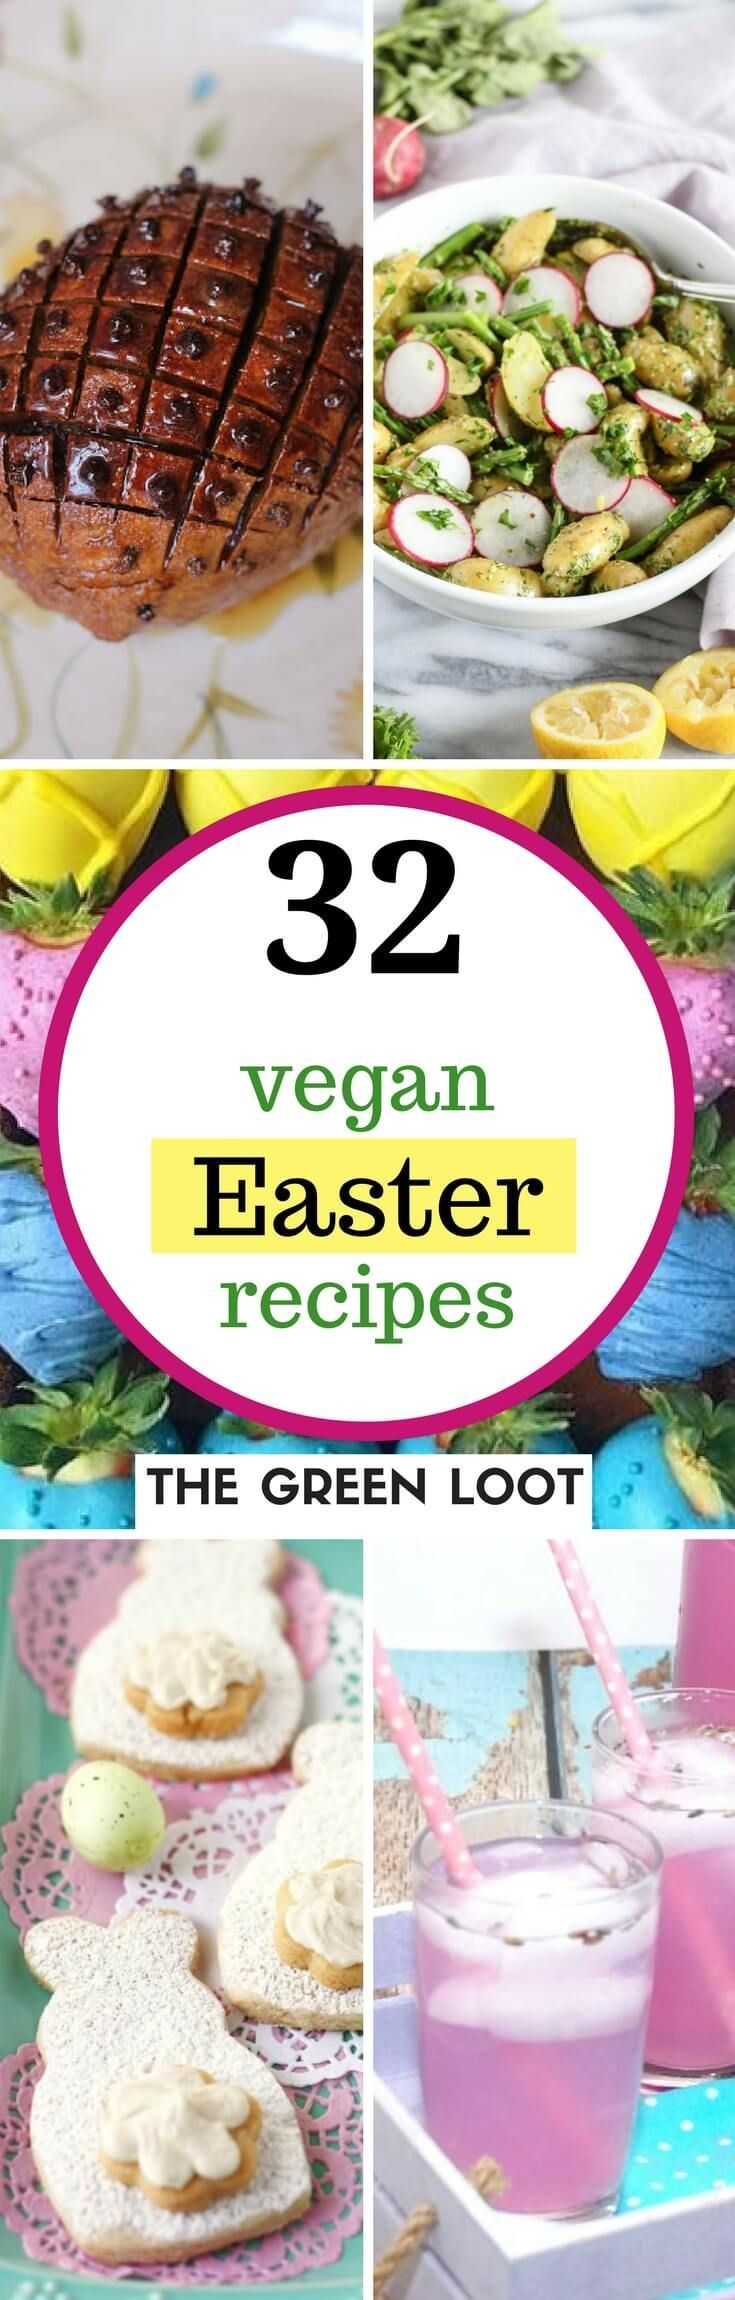 32 vegan easter recipes the whole family will love